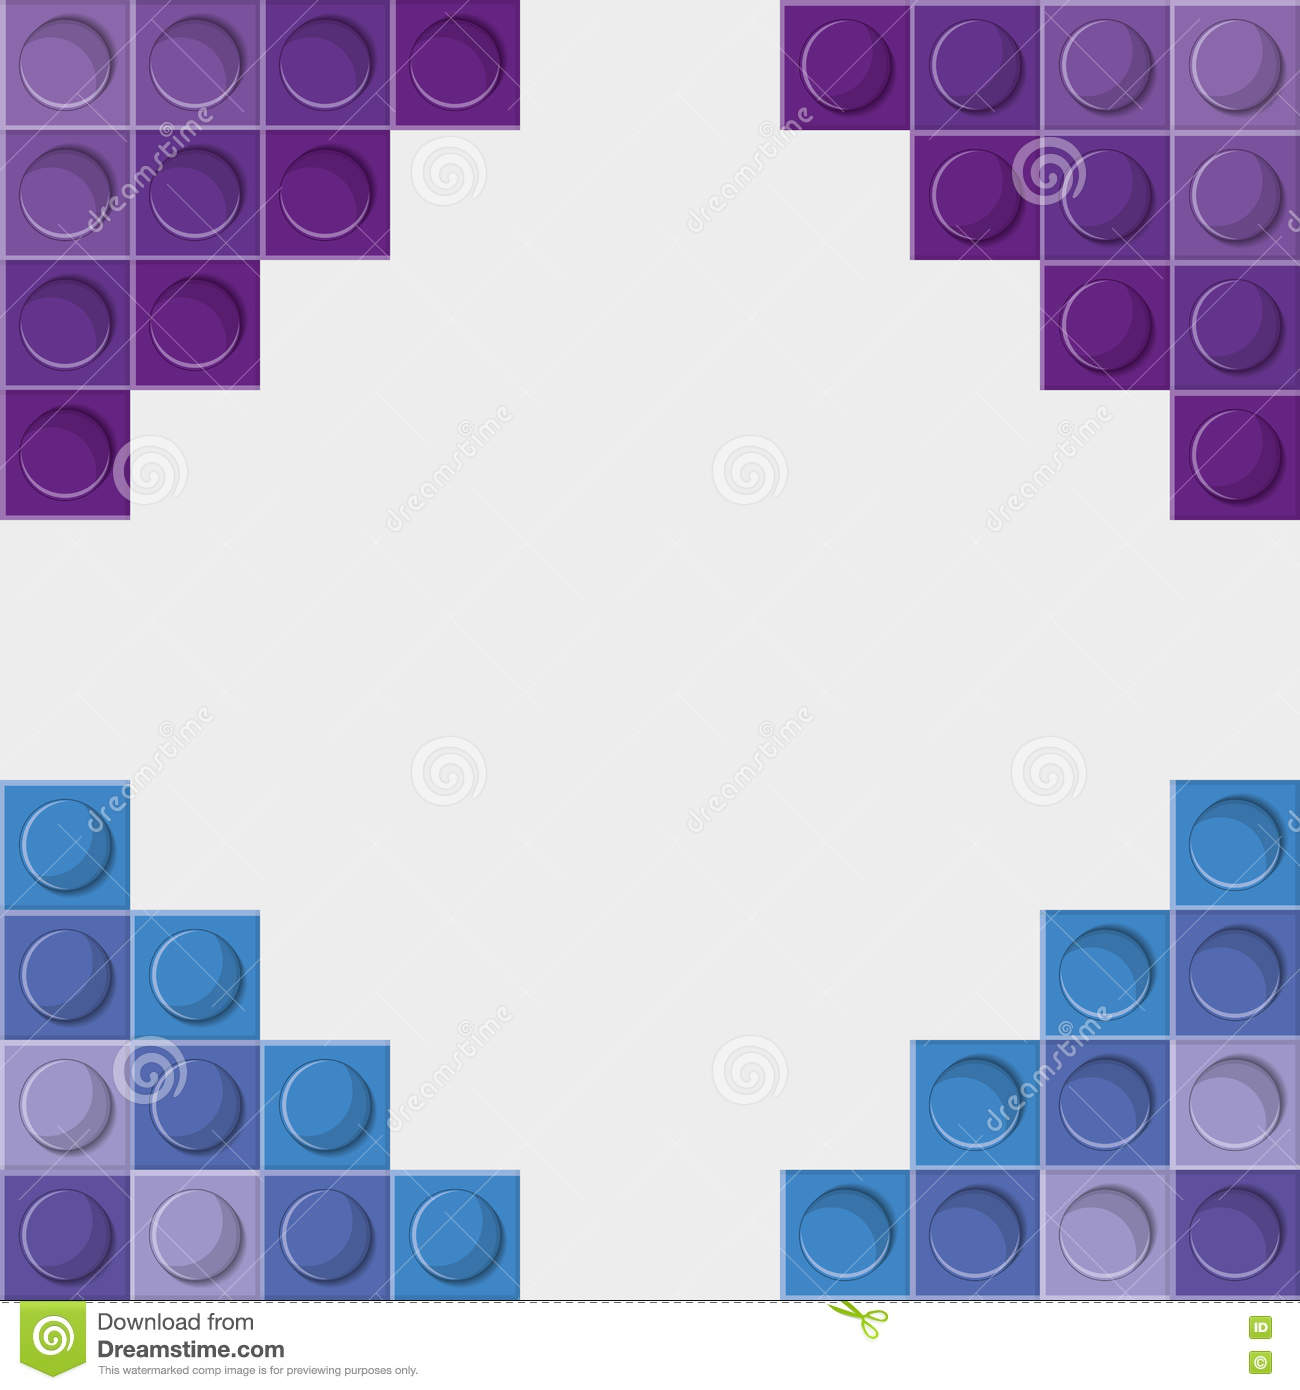 Lego icon abstract frame figure vector graphic stock vector lego icon abstract frame figure vector graphic stock image stopboris Gallery